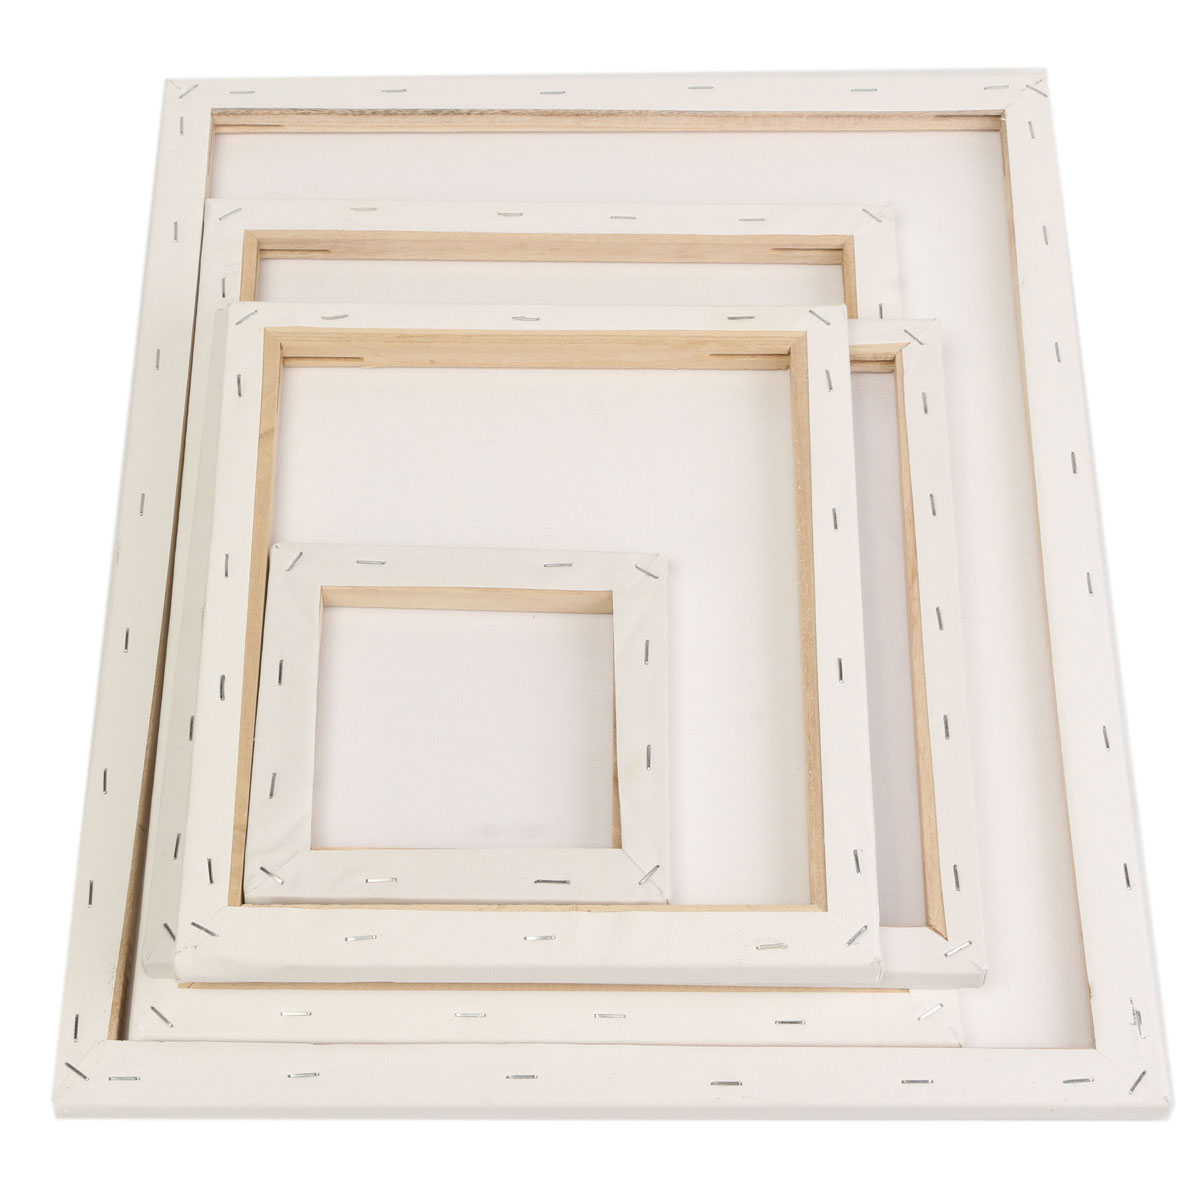 1piece-white-blank-square-artist-canvas-painting-drawing-board-wooden-frame-for-canvas-oil-painting-for-primed-oil-acrylic-paint